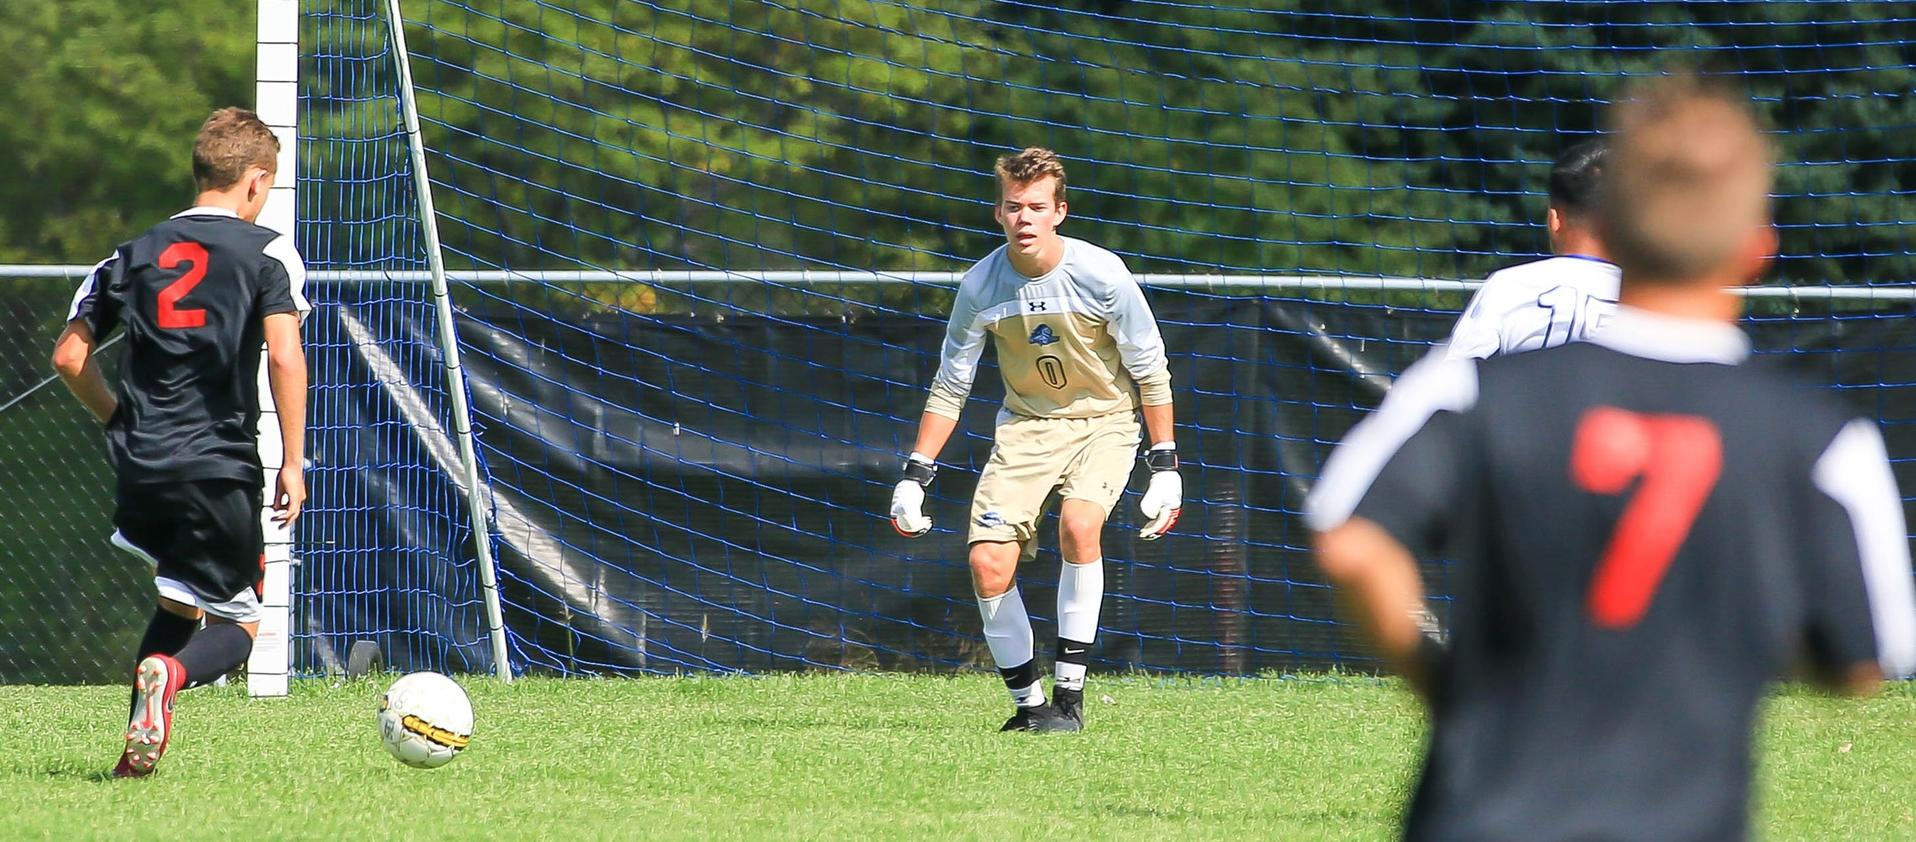 Men's soccer team finished the season with a 8-11 record.